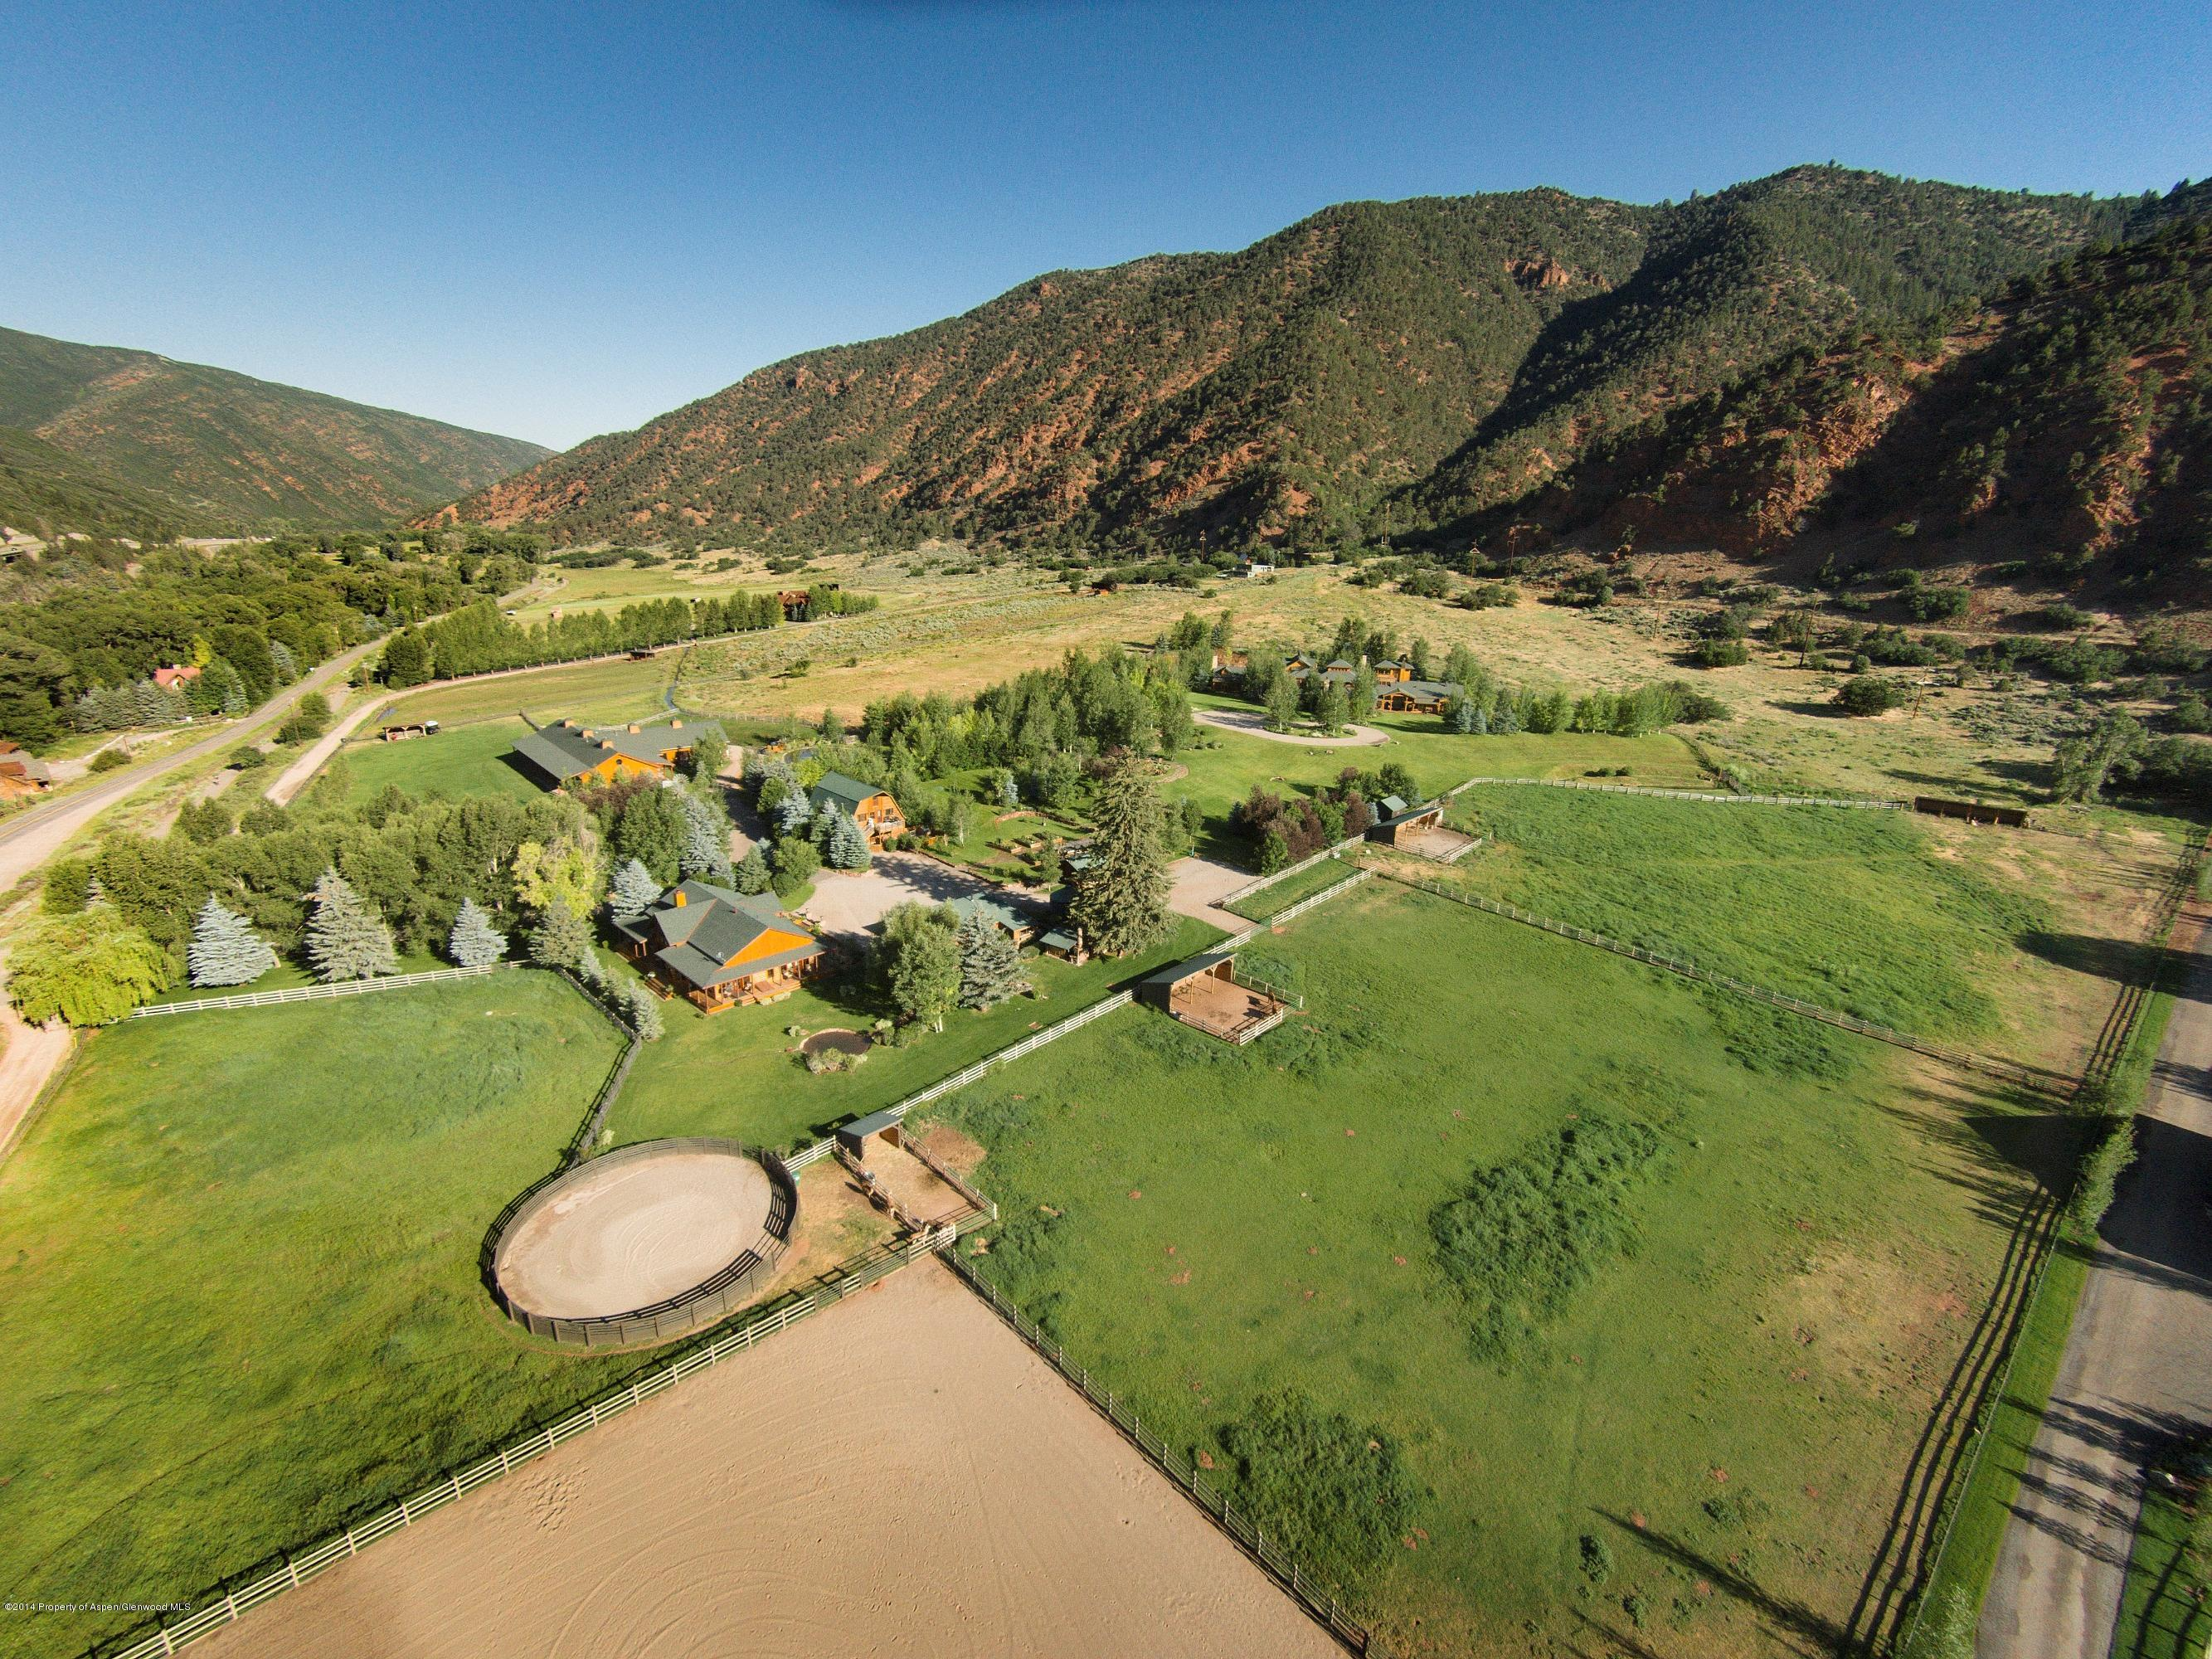 MLS# 135595 - 50 - 50 E River Ranch Road, Snowmass, CO 81654